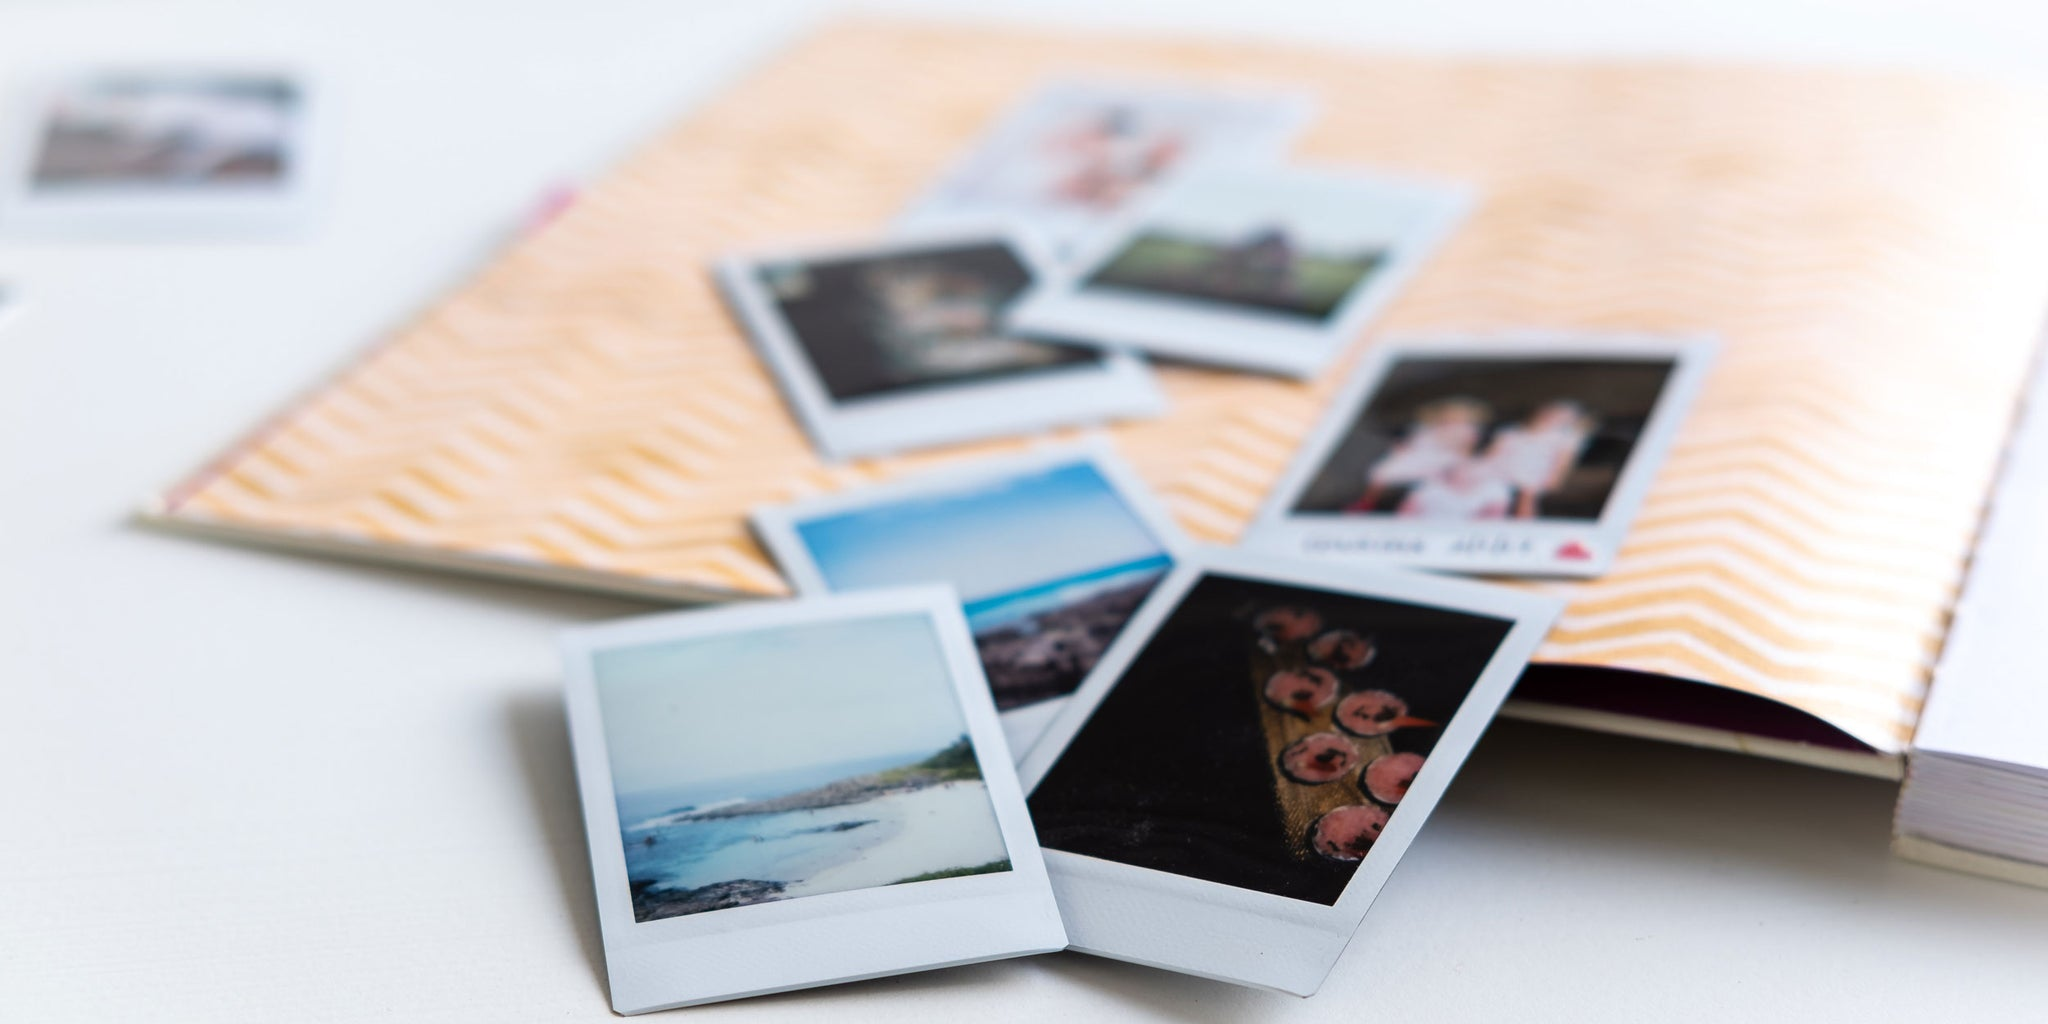 5 Galentine's Day Gift Ideas for 2021 (For Galentine's Near or Far) Photo Book | Patio Essentials